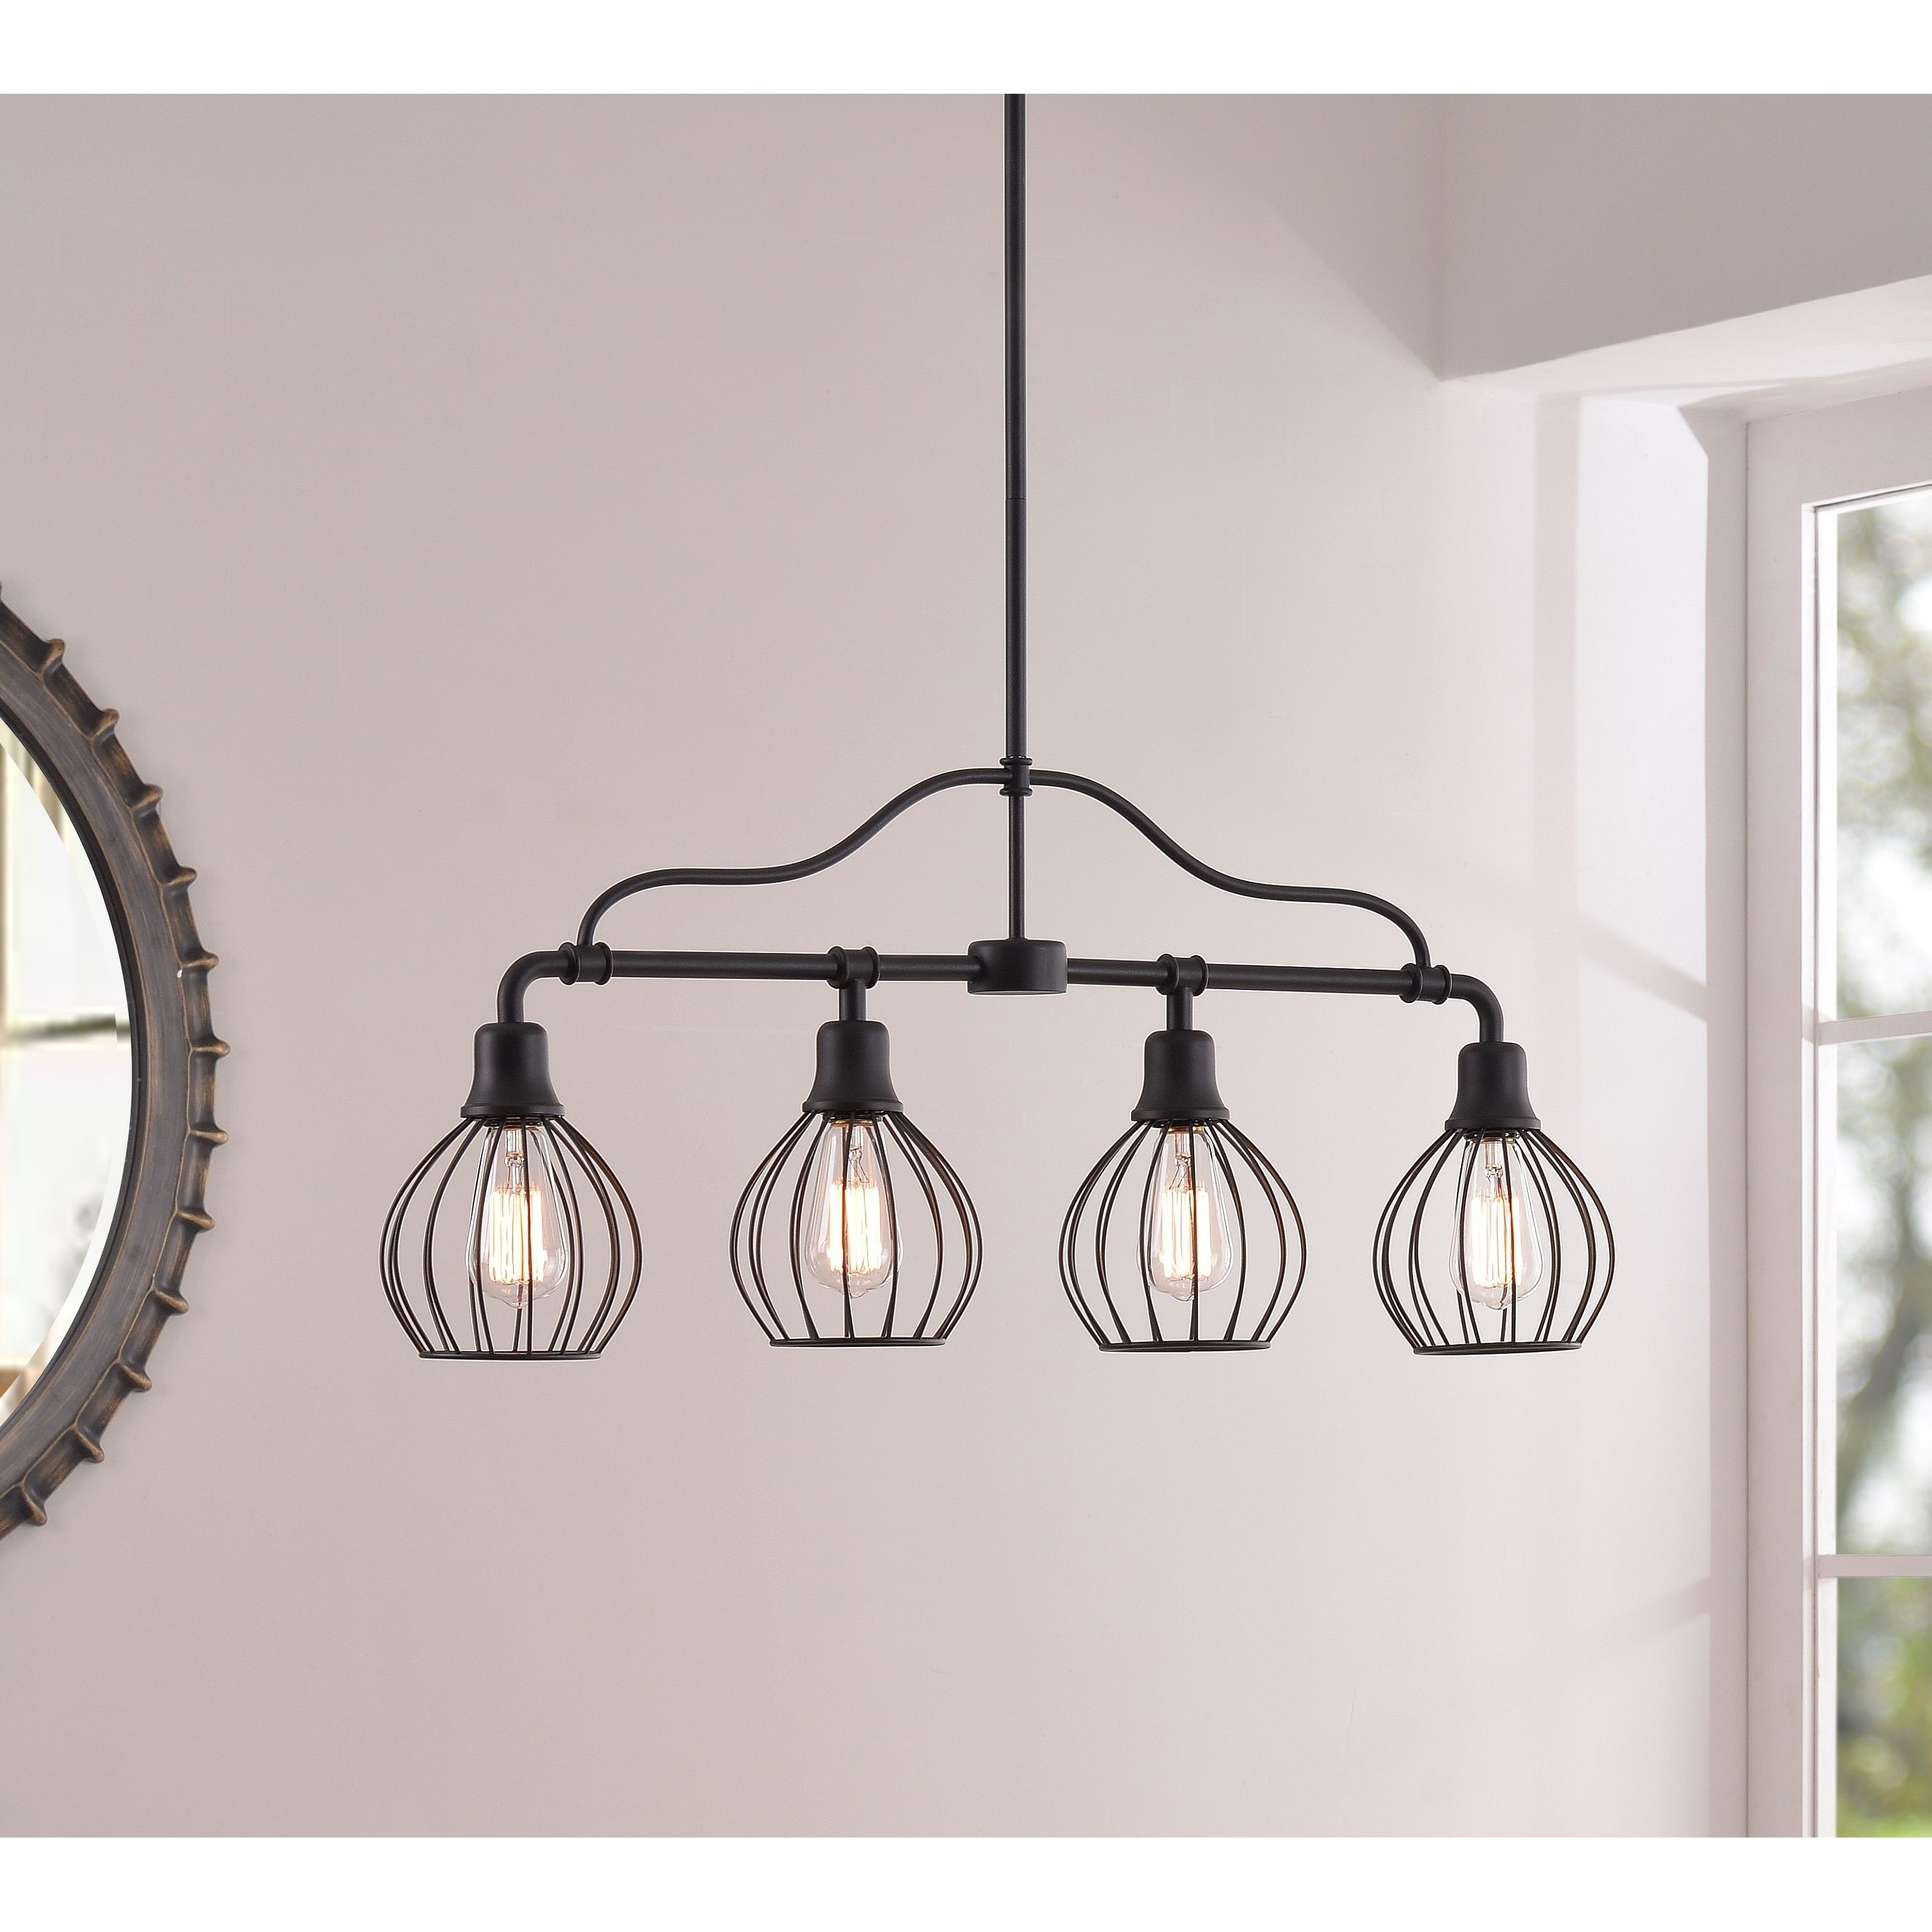 Phenomenal Amelia 4 Light Island Light Black Finish Products In Download Free Architecture Designs Scobabritishbridgeorg